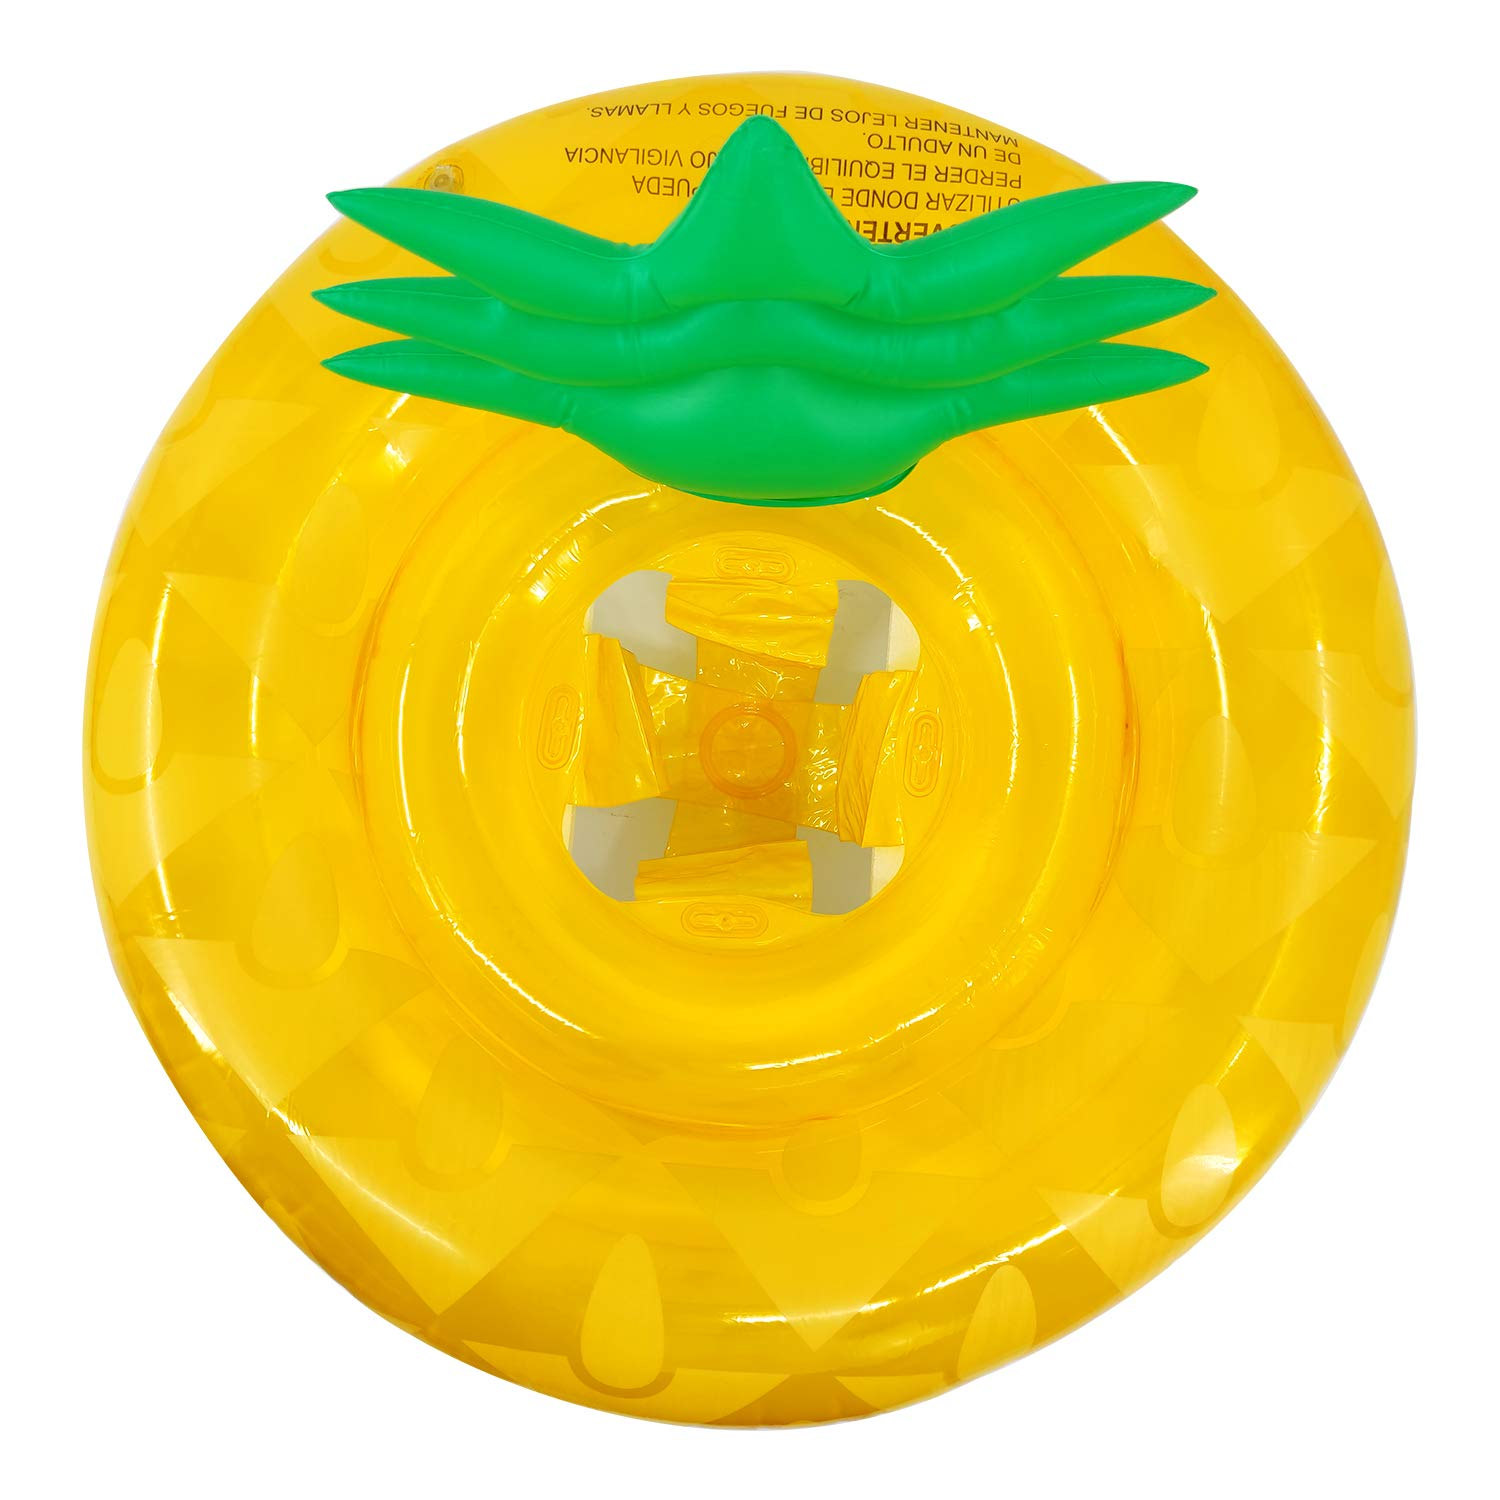 Baby Pool Floats with Safety Seat & Backrest, Pineapple Shaped Swim Rings Float for Kids Toddler Babies Swimming Float Baby Floats Fruit Pool Toys for Swimming Pool Party Summer Beach Floaties